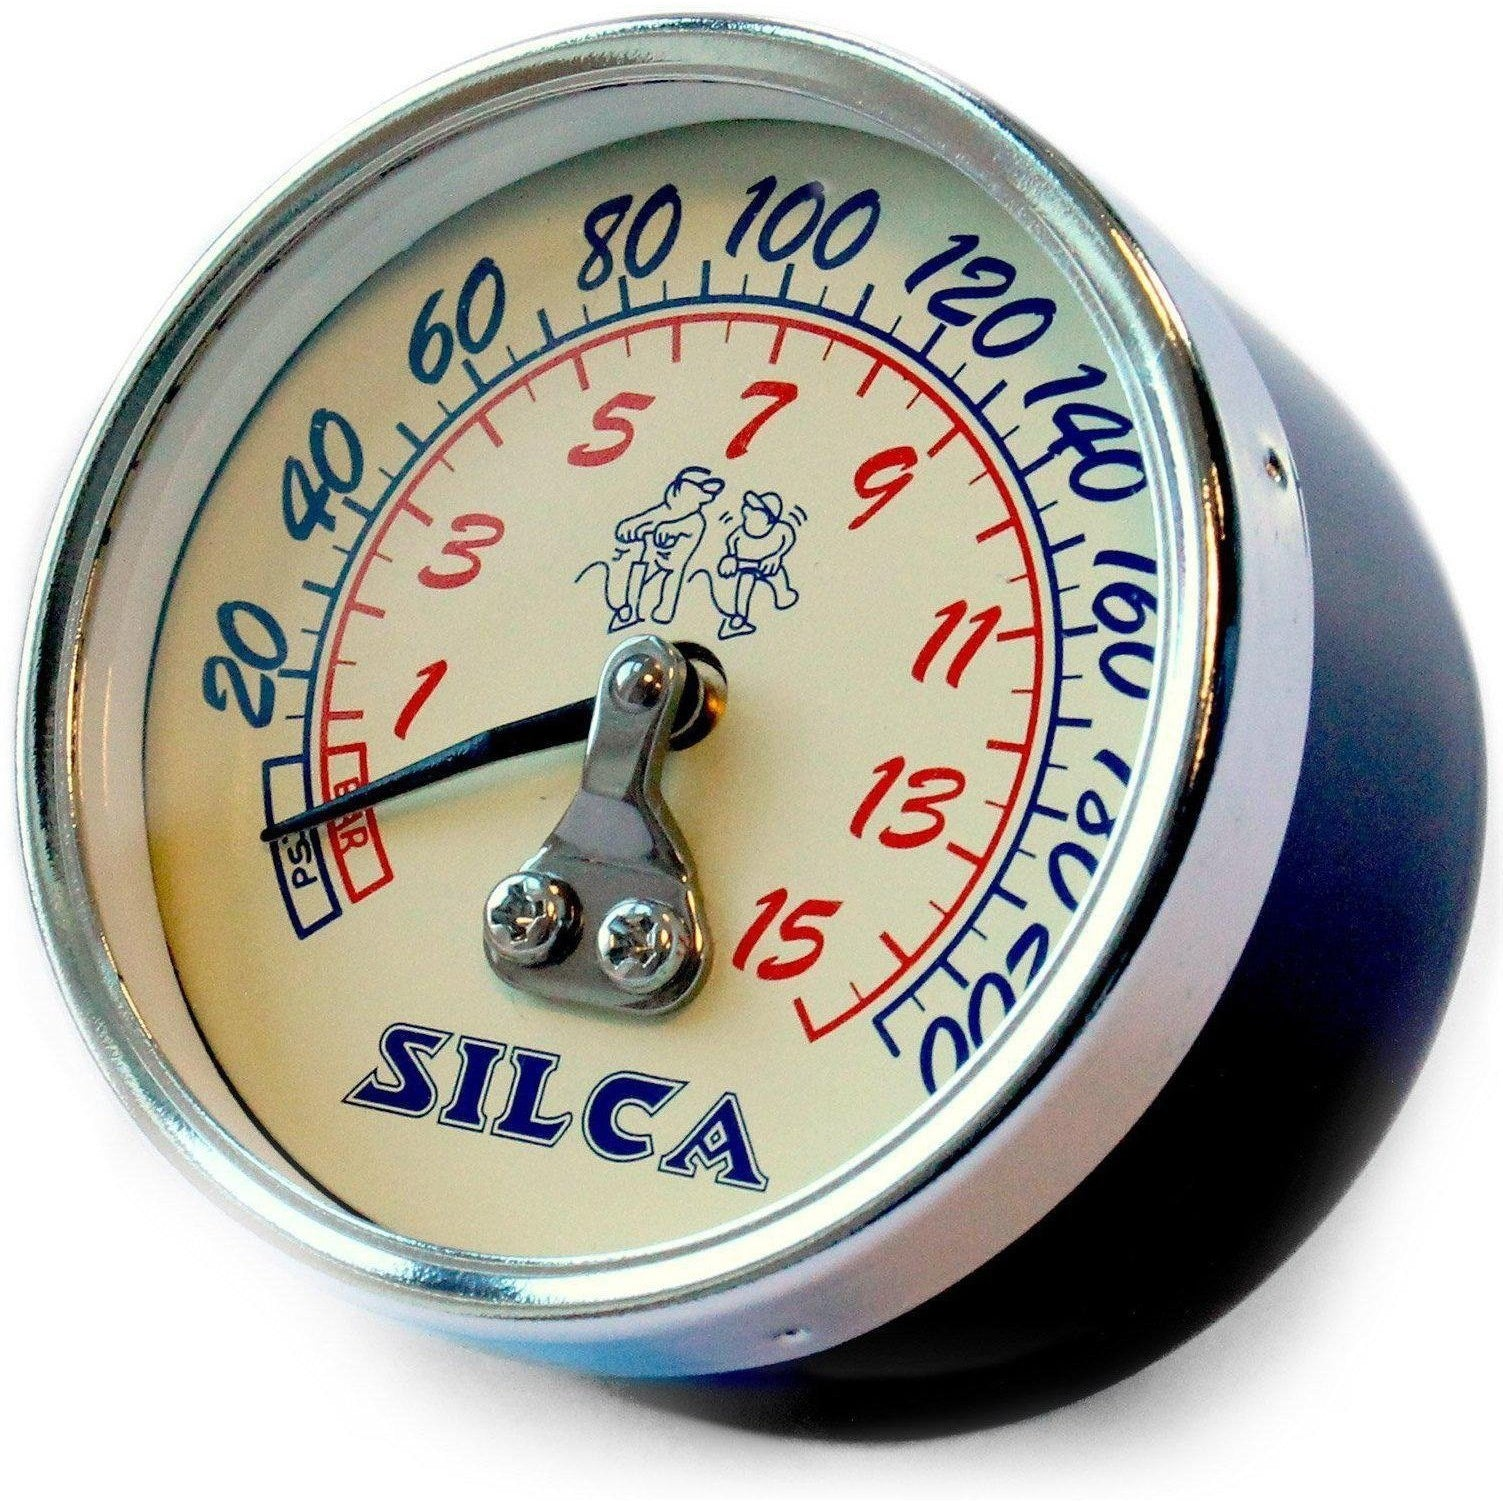 Pumps - Silca 210psi Replacement Gauge For Pista And SuperPista